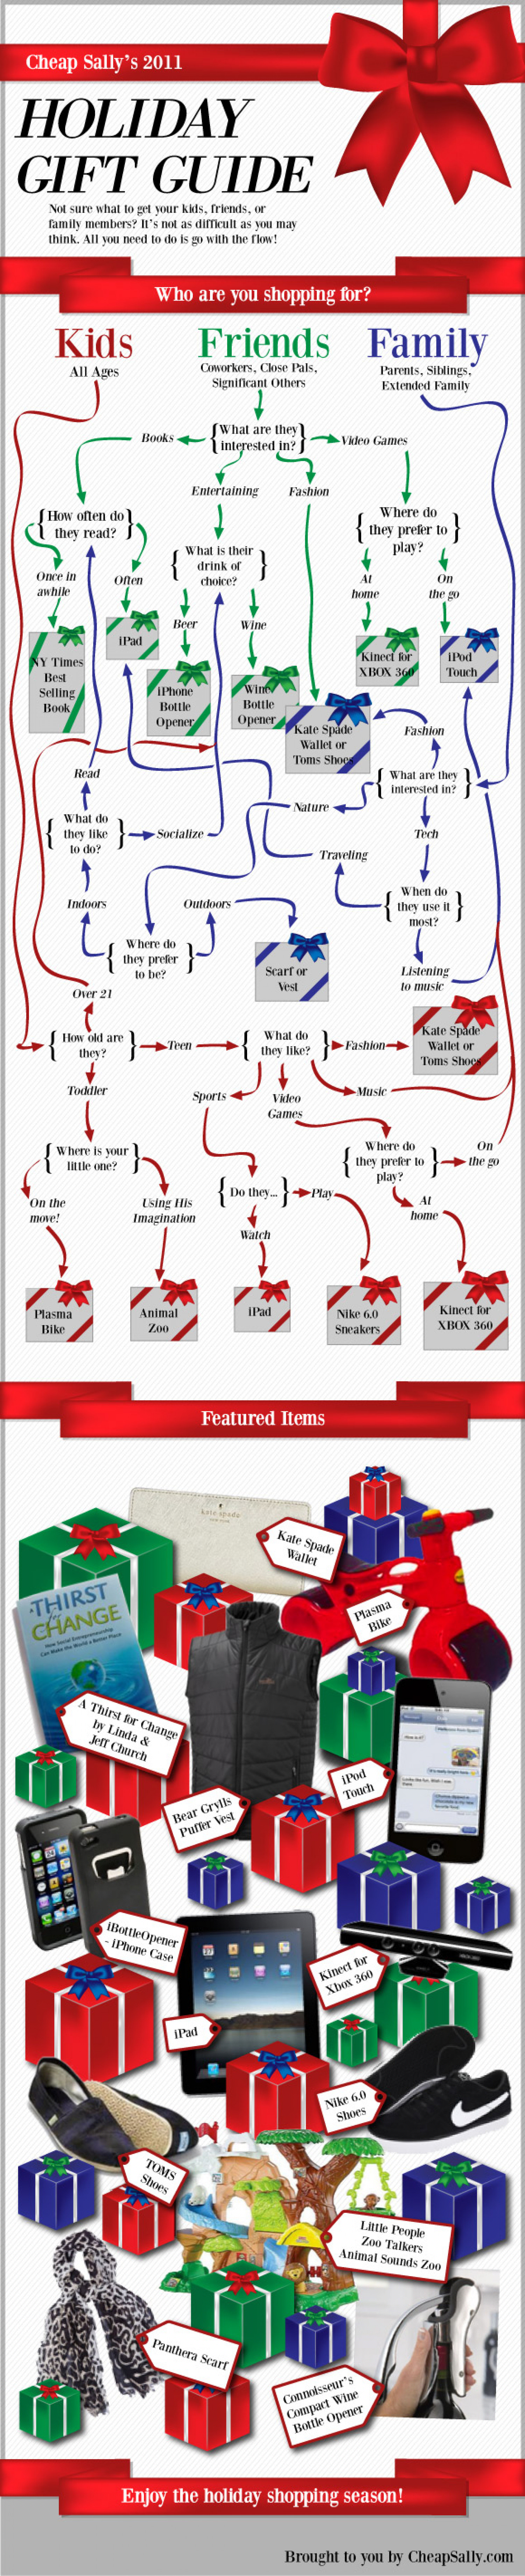 Holiday Gift Guide Infographic